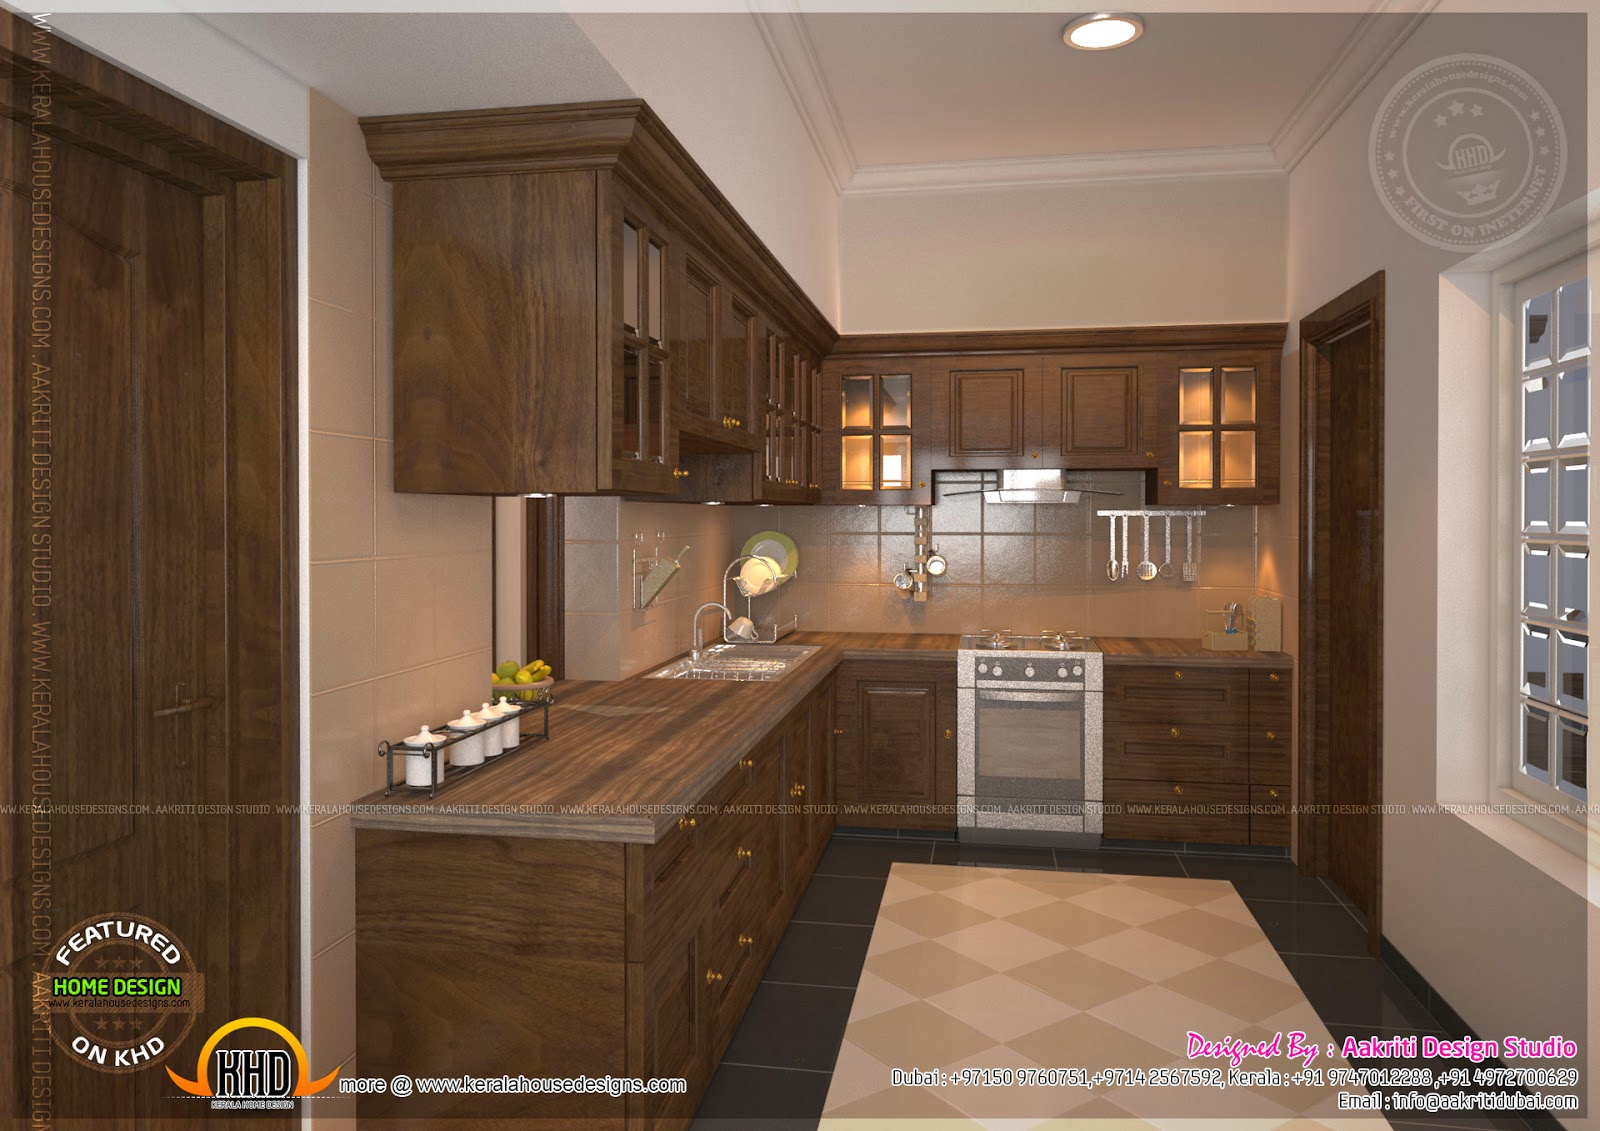 Traditional Indian Kitchen Designs Kitchen Designsaakriti Design Studio  Kerala Home Design